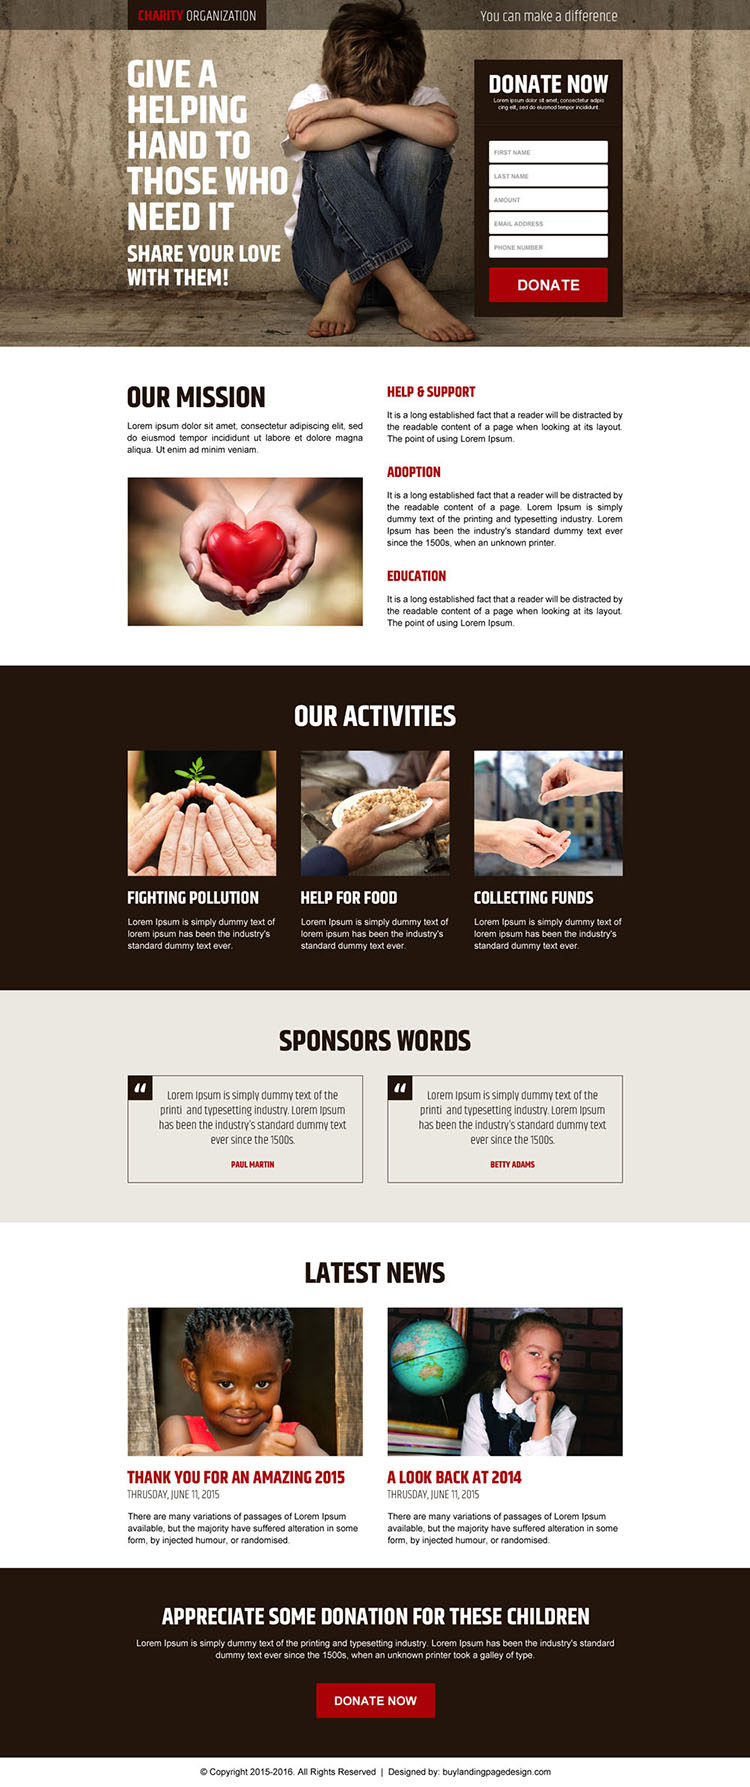 charity organization responsive online donation lead capture landing page